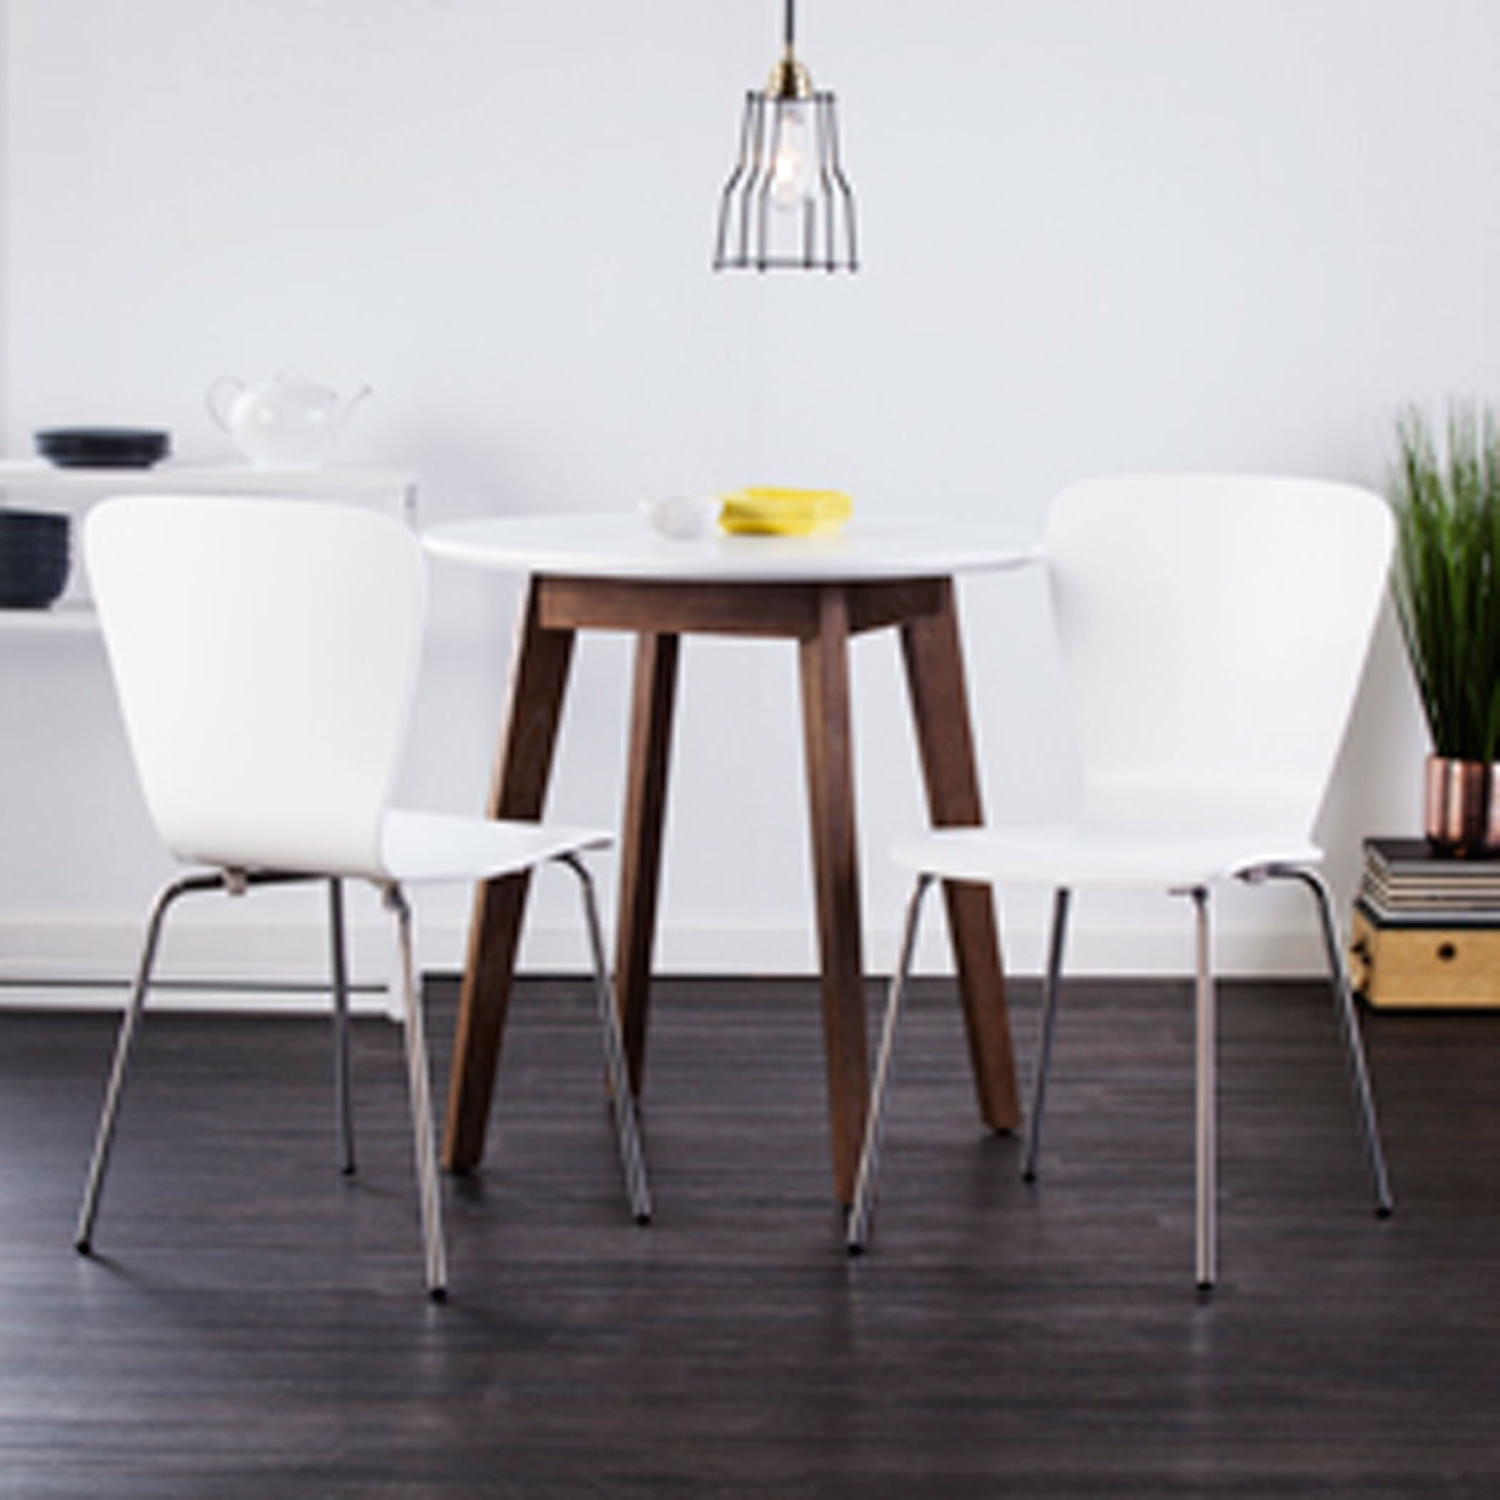 Pearson White Slipcovered Side Chairs Inside Widely Used Holly & Martin Cadby Bentwood Side Chairs White, Set Of 2 Bc (View 10 of 20)